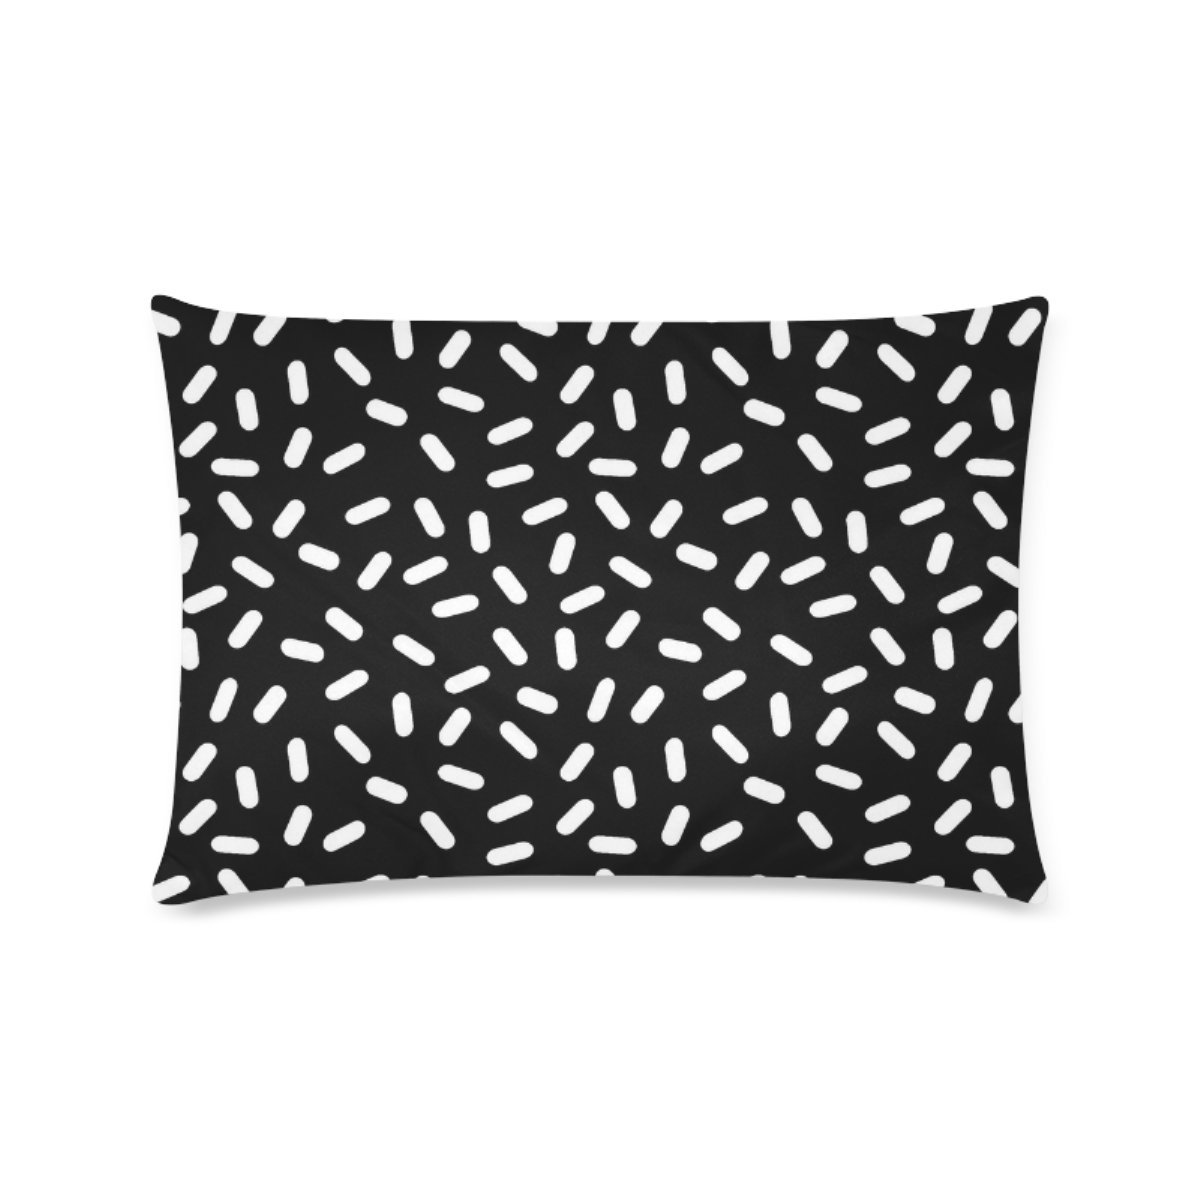 Custom Bingo Black And White Personalized Pillowcases Zippered Pillow Covers 16 by 24 Inches Two Sides by BEAYCovers